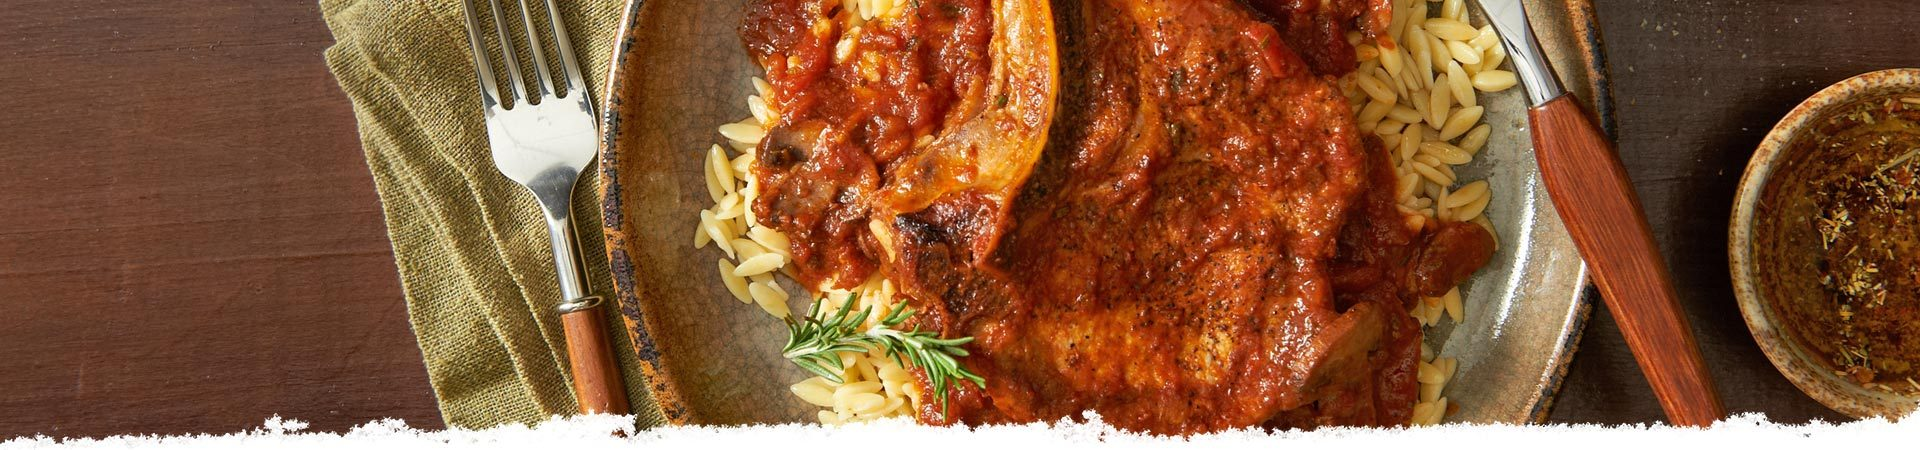 Balsamic & Burgundy Braised Pork Chops